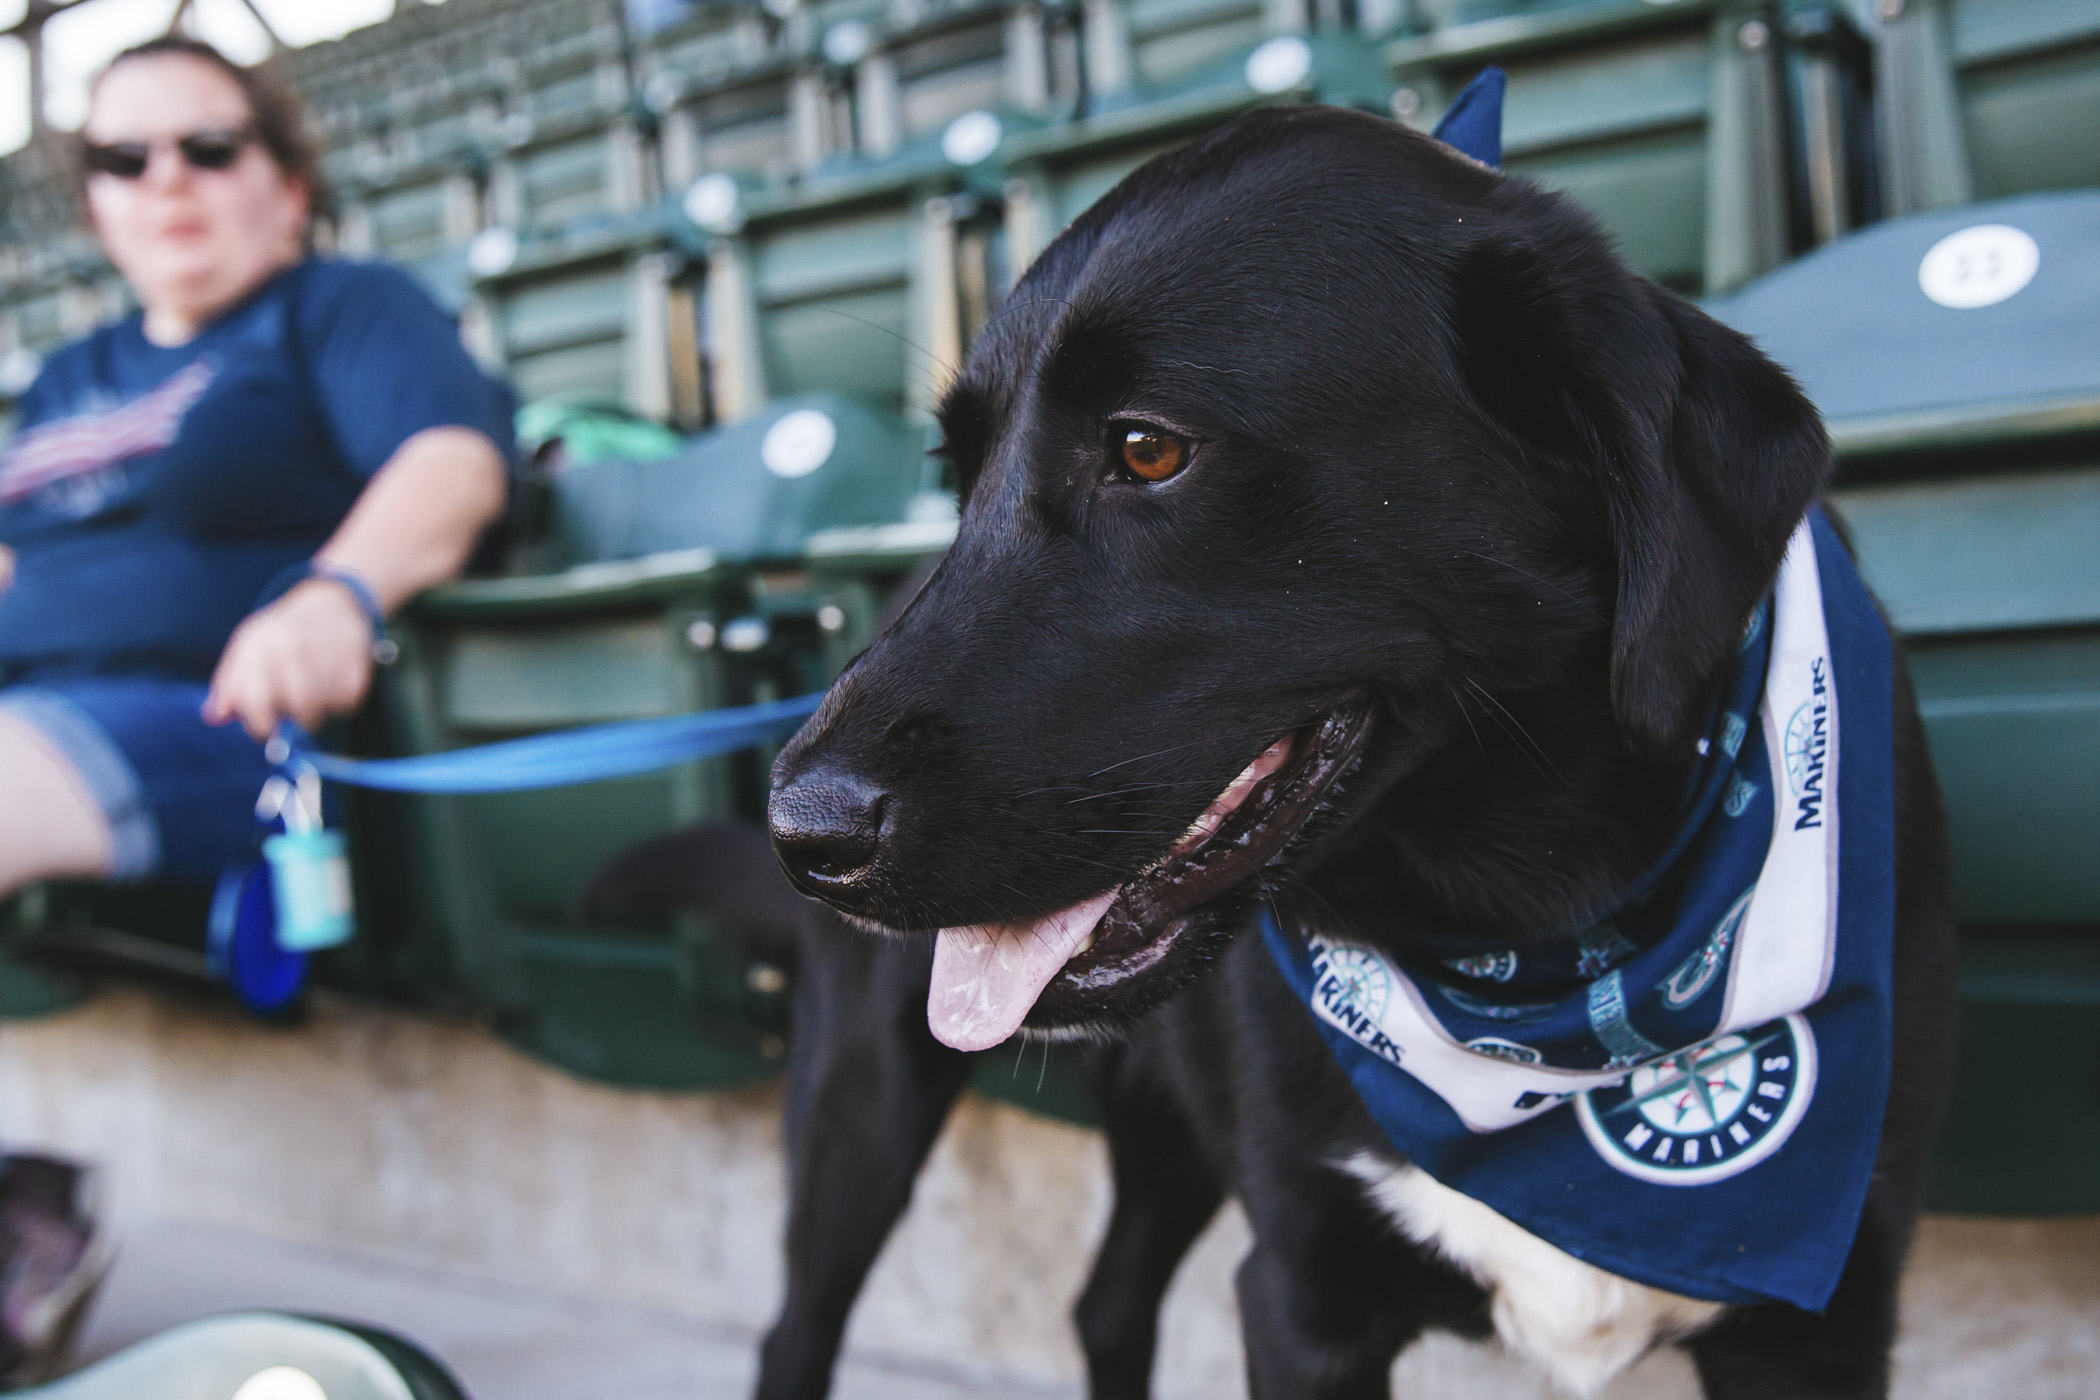 The Seattle Mariners second Bark at the Park of the season brought hundreds of dogs and their owners to the bleachers at T-Mobile Park. They barked and howled for their favorite Mariners throughout the game, and after the dogs and their owners got on the field to run the bases. There's one final Bark at the Park this season, to be held on Sept. 12, 2019. (Sunita Martini / Seattle Refined)